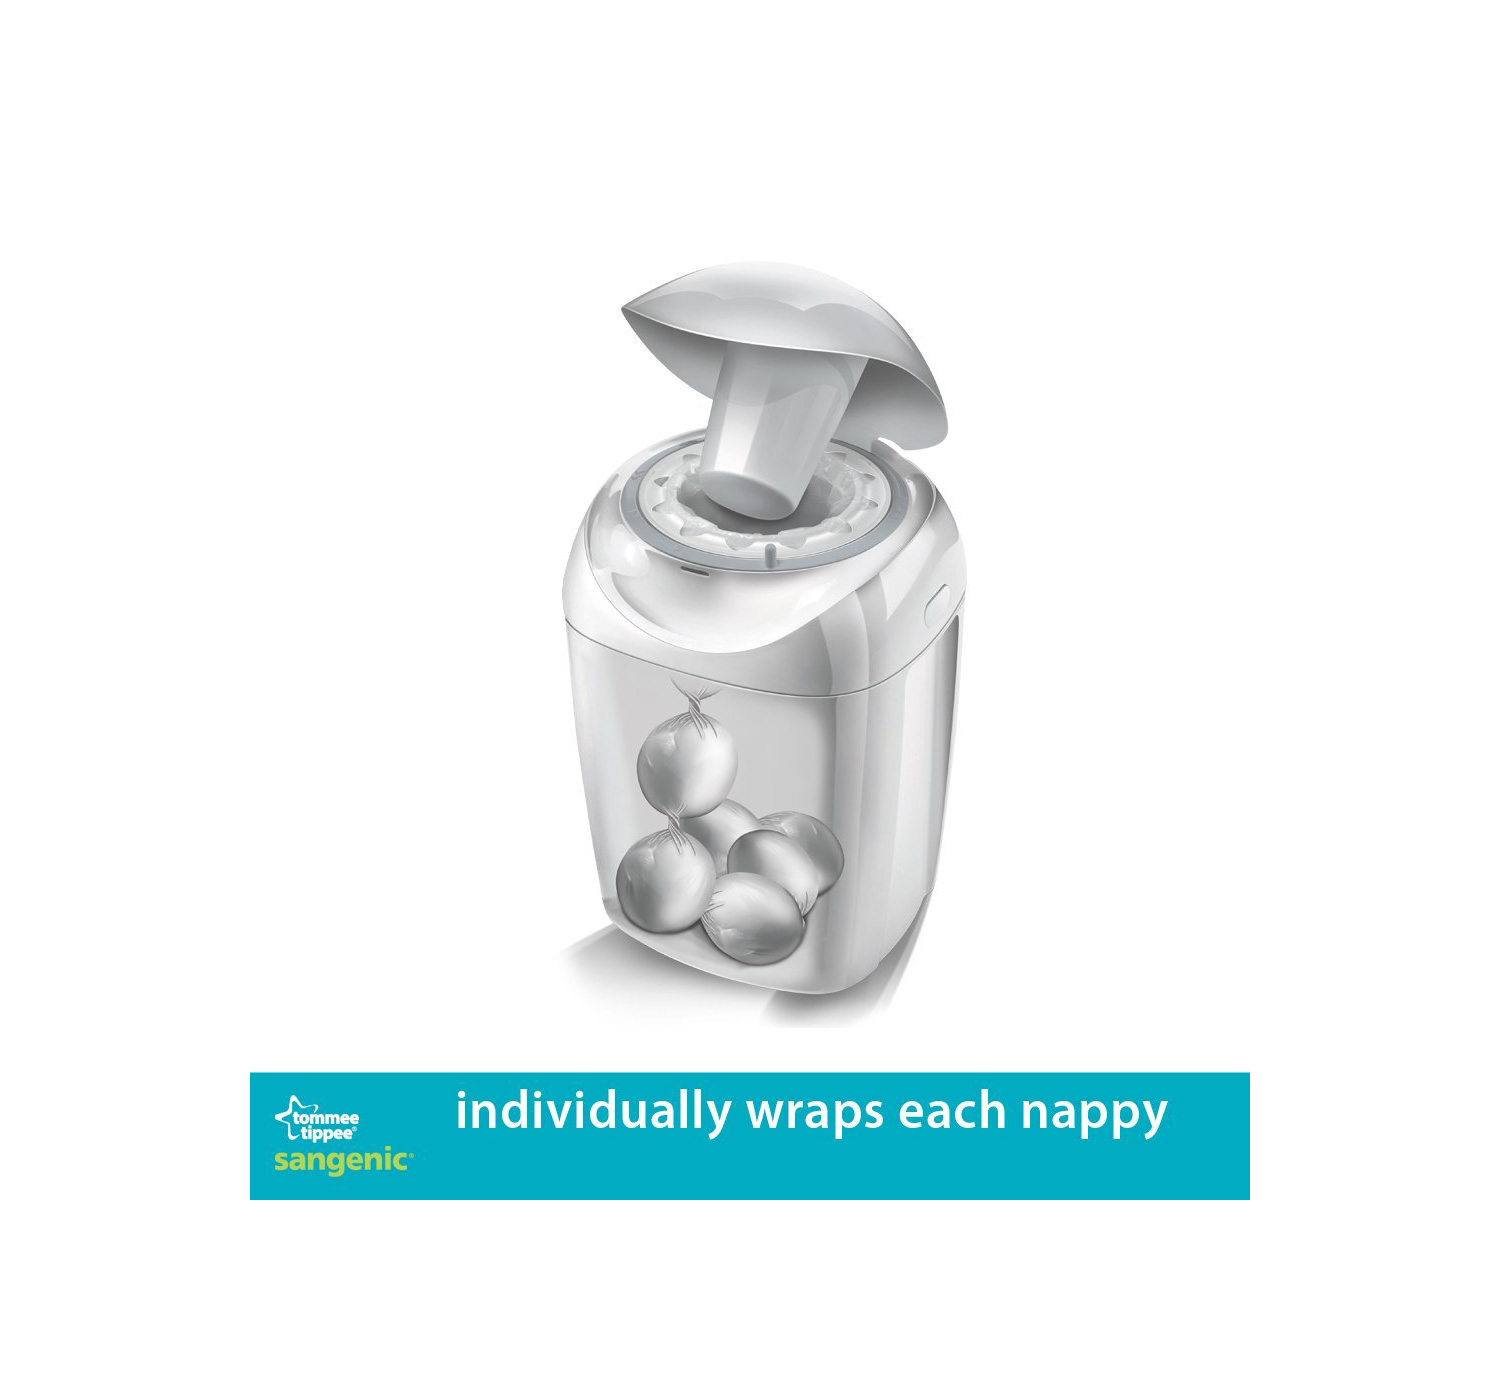 tommee tippee nappy wrapper instructions